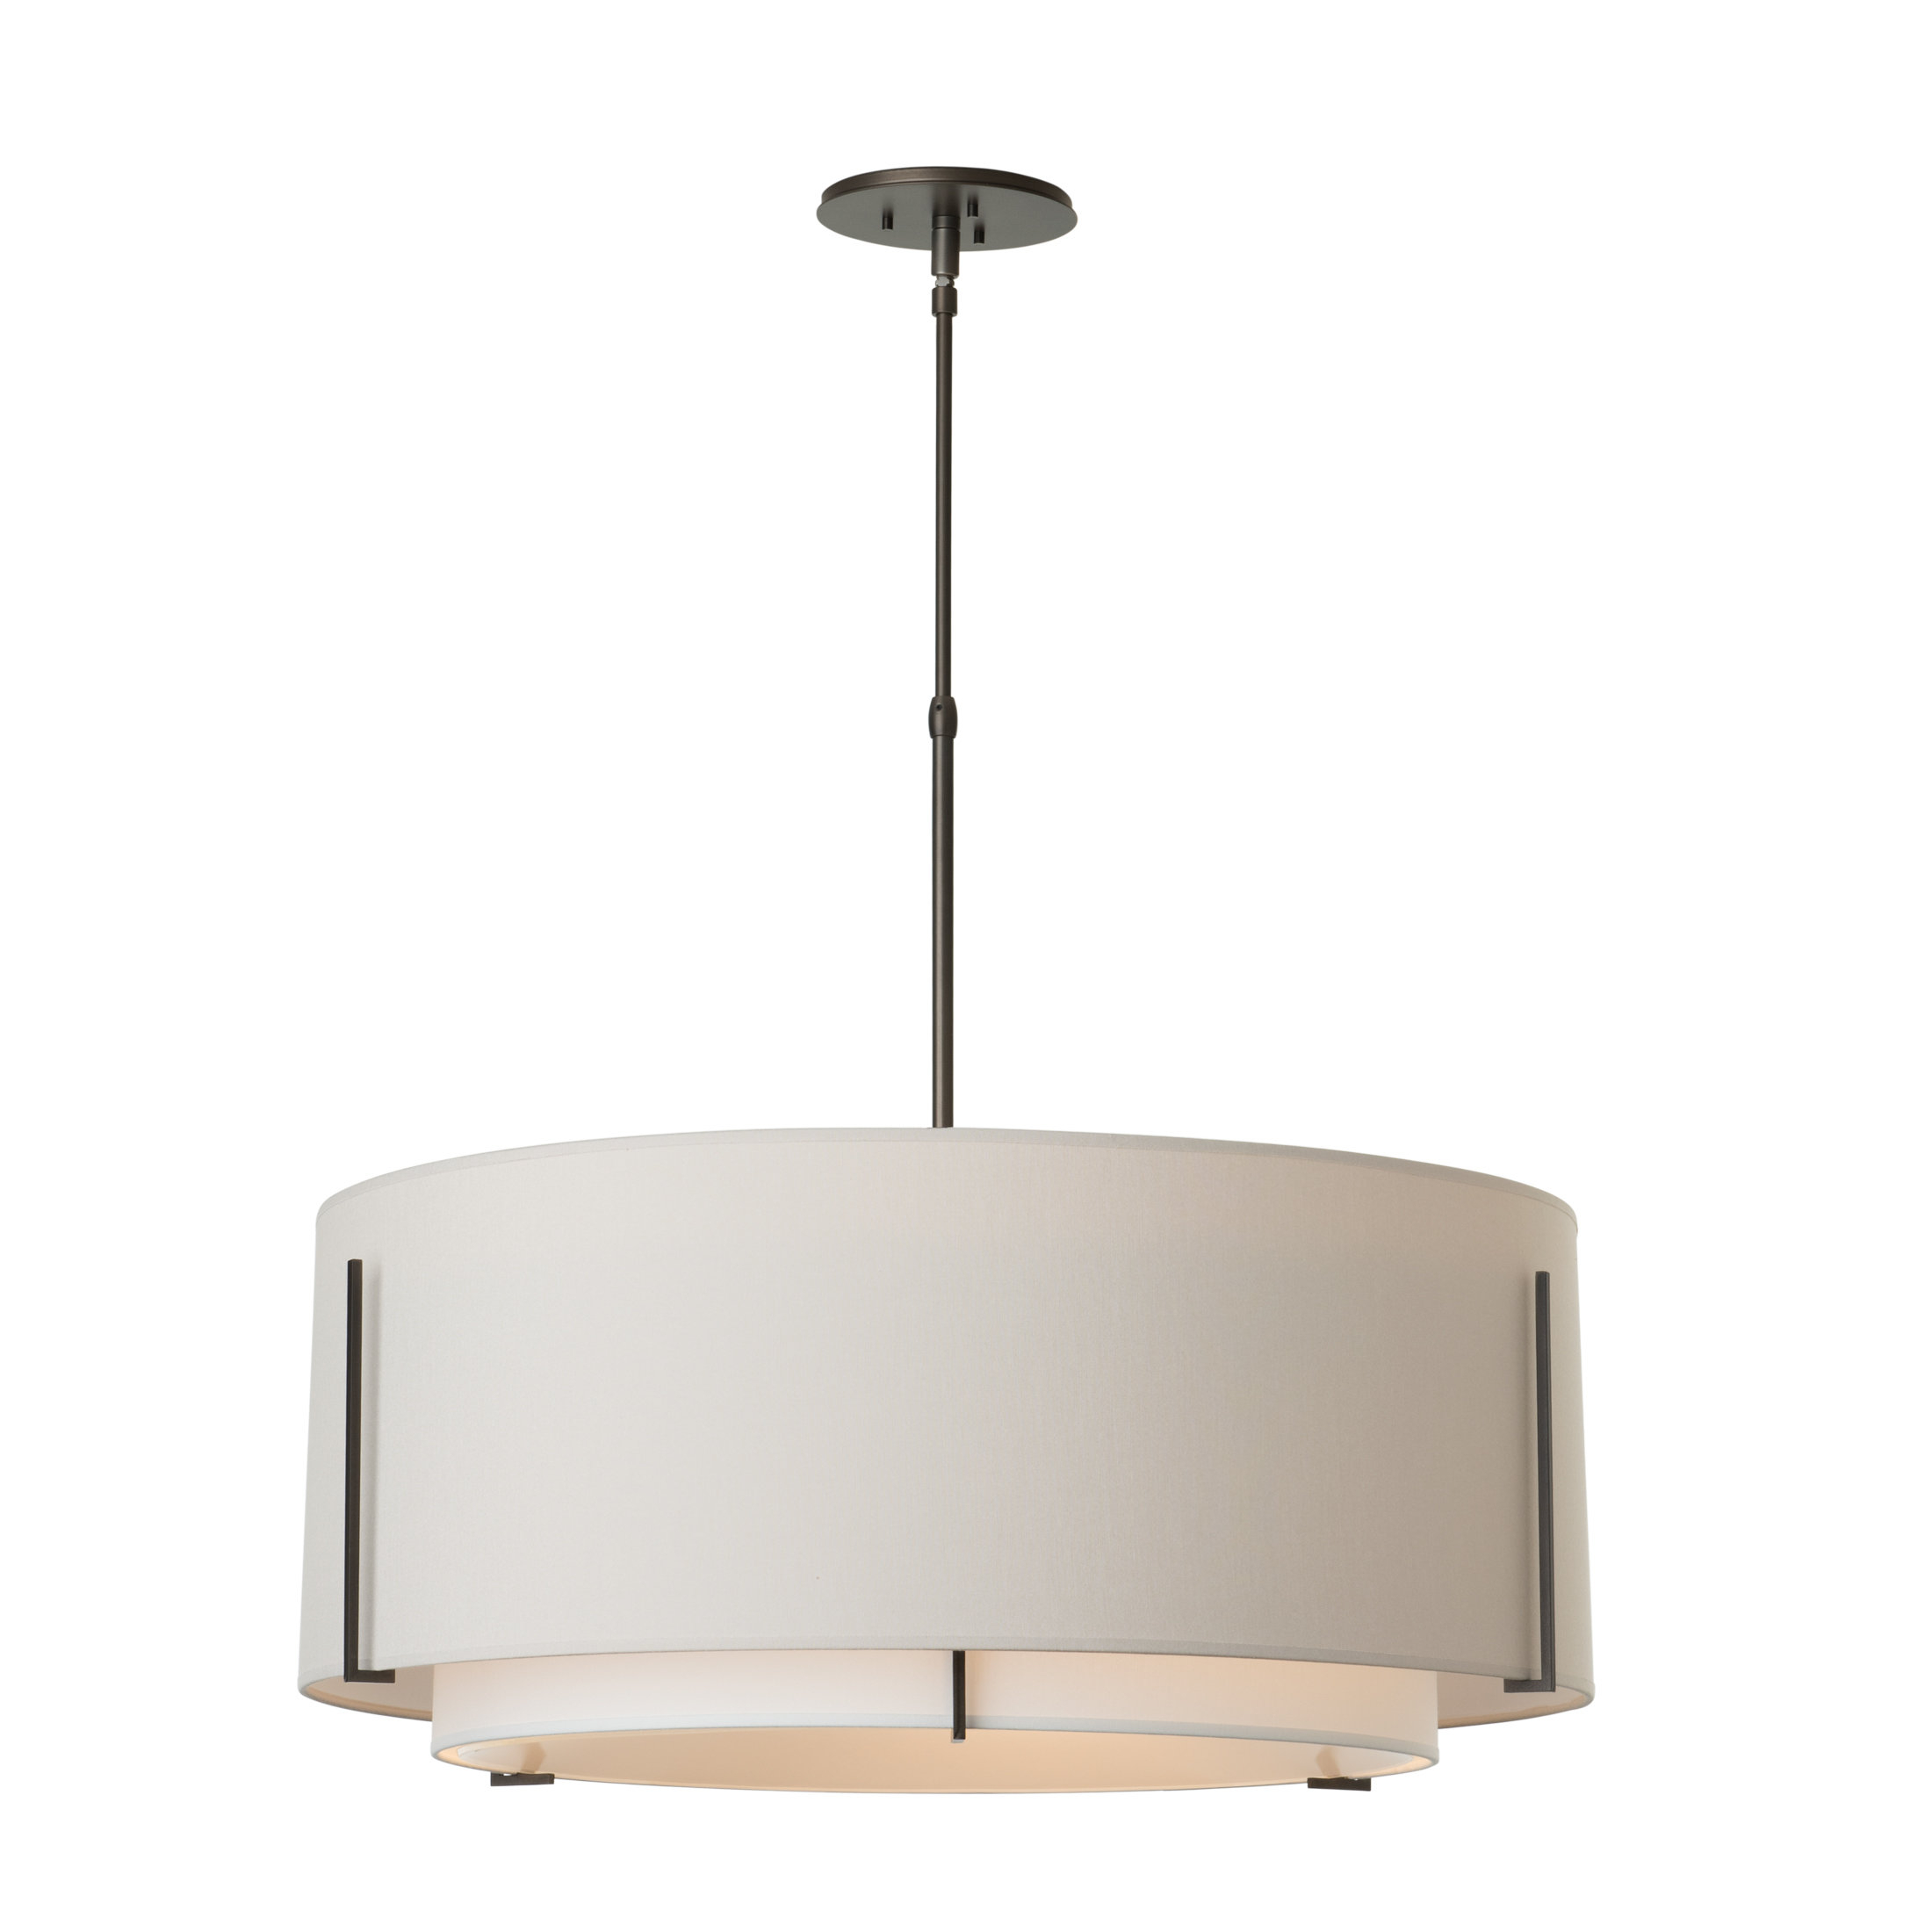 Most Recent Black Drum Pendant Lighting You'll Love In  (View 20 of 25)